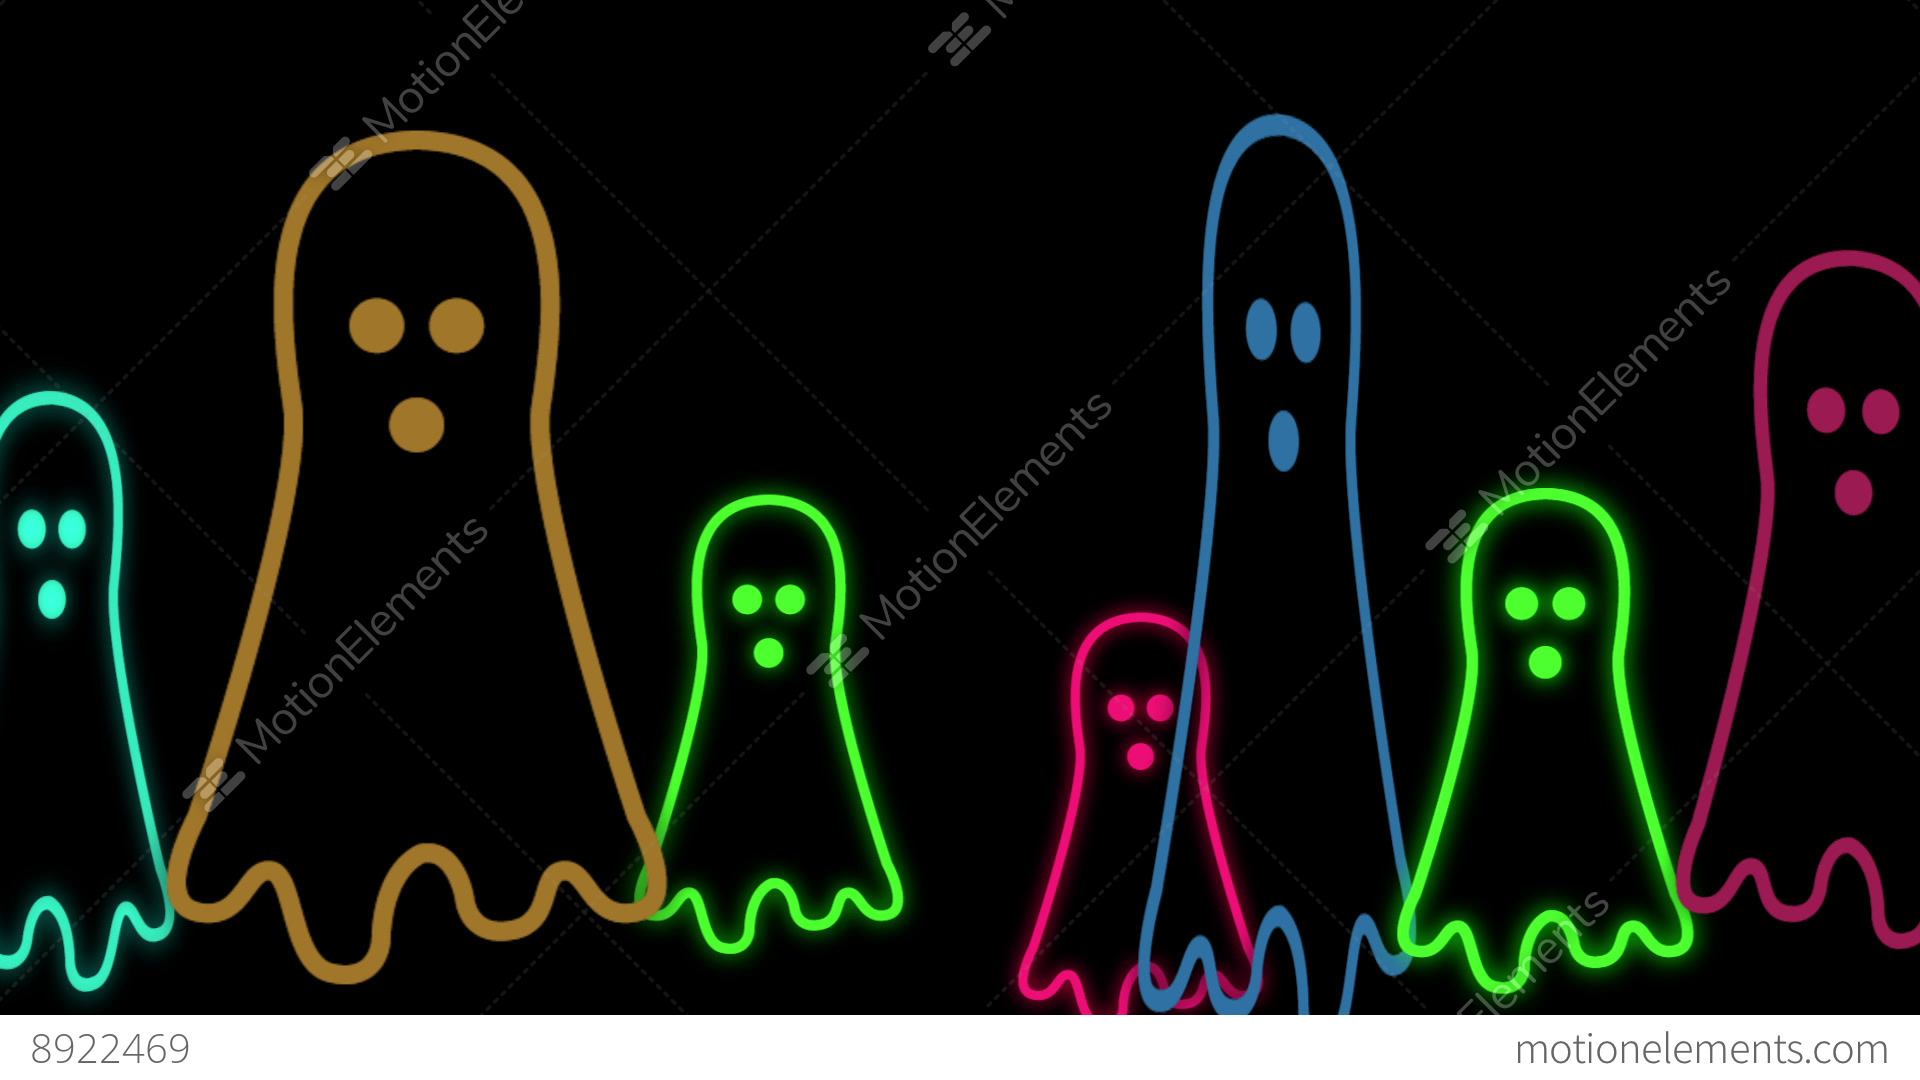 Most Inspiring Wallpaper Halloween Neon - me8922469-halloween-animated-background-cute-little-neon-ghost-stock-hd-a0127  Pic_97913.jpg